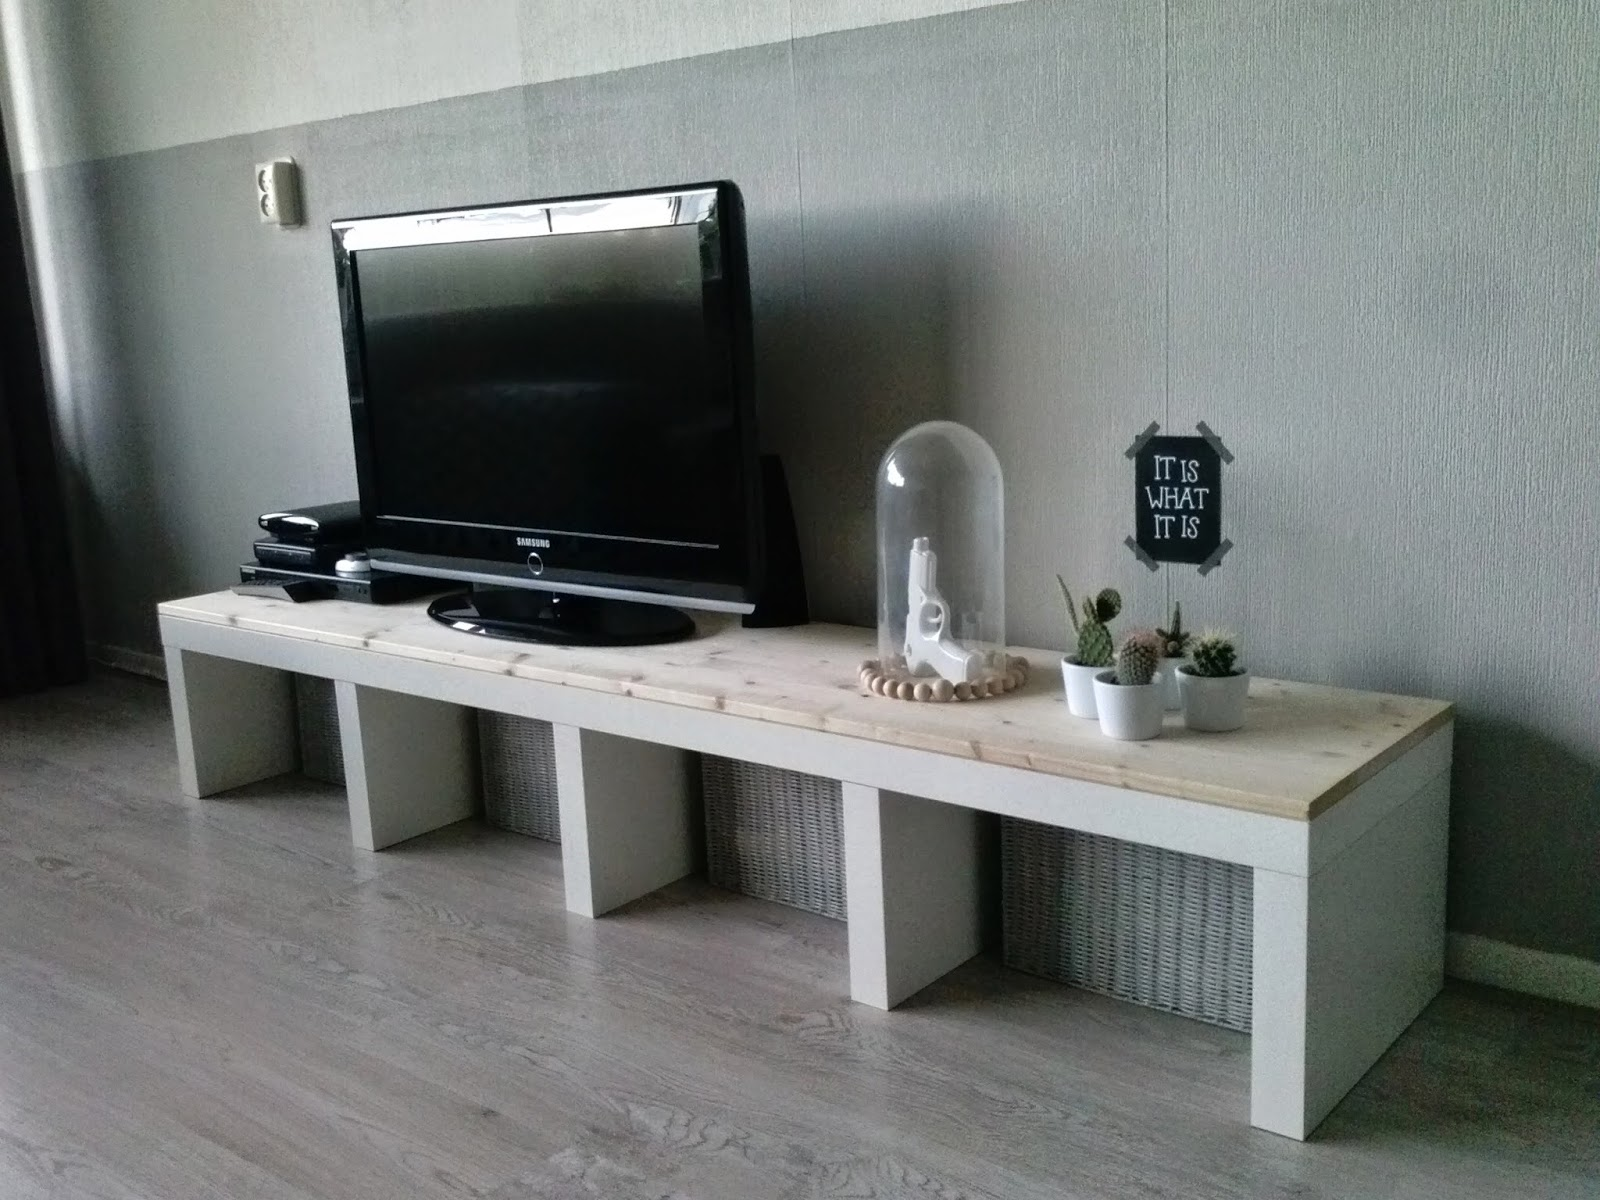 Ikea Tv Tafel : Ikea tv meubel lack wit archidev